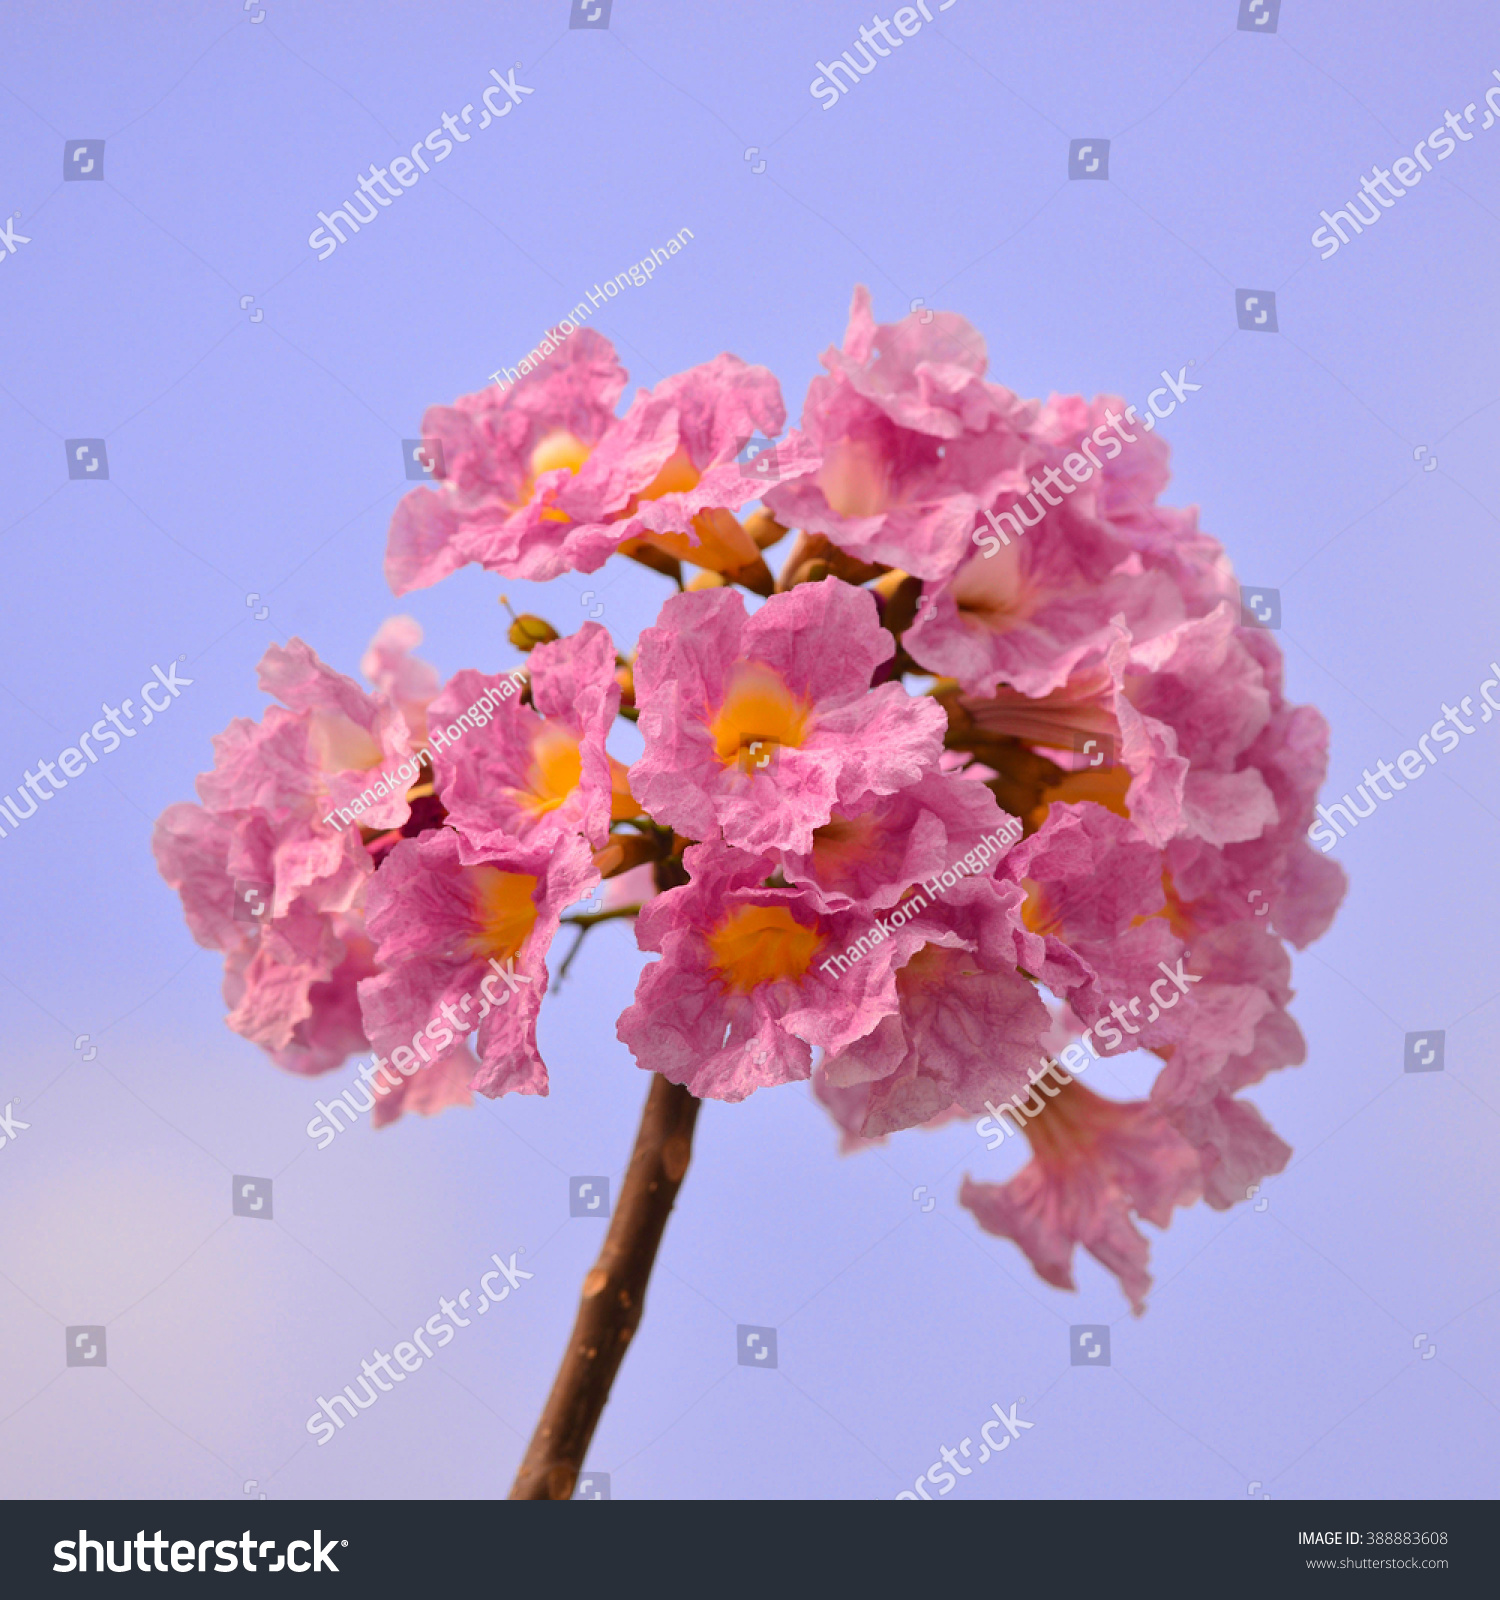 Royalty free tabebuia rosea is a pink flower 388883608 stock photo tabebuia rosea is a pink flower neotropical tree common name pink trumpet tree pink mightylinksfo